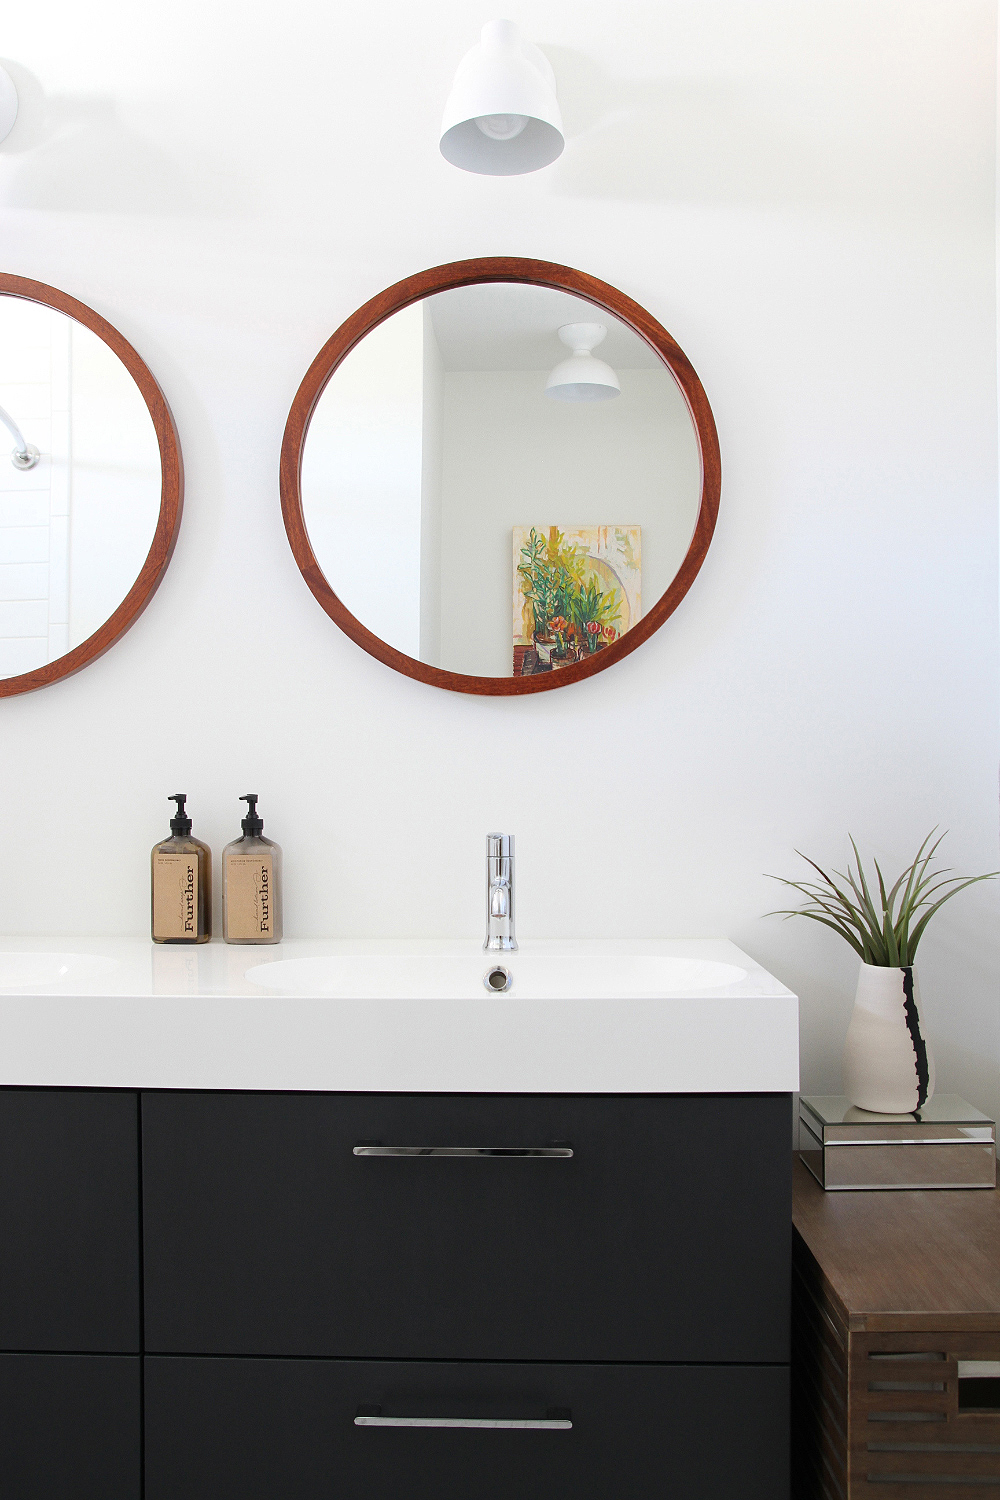 Loved these circle mirrors!